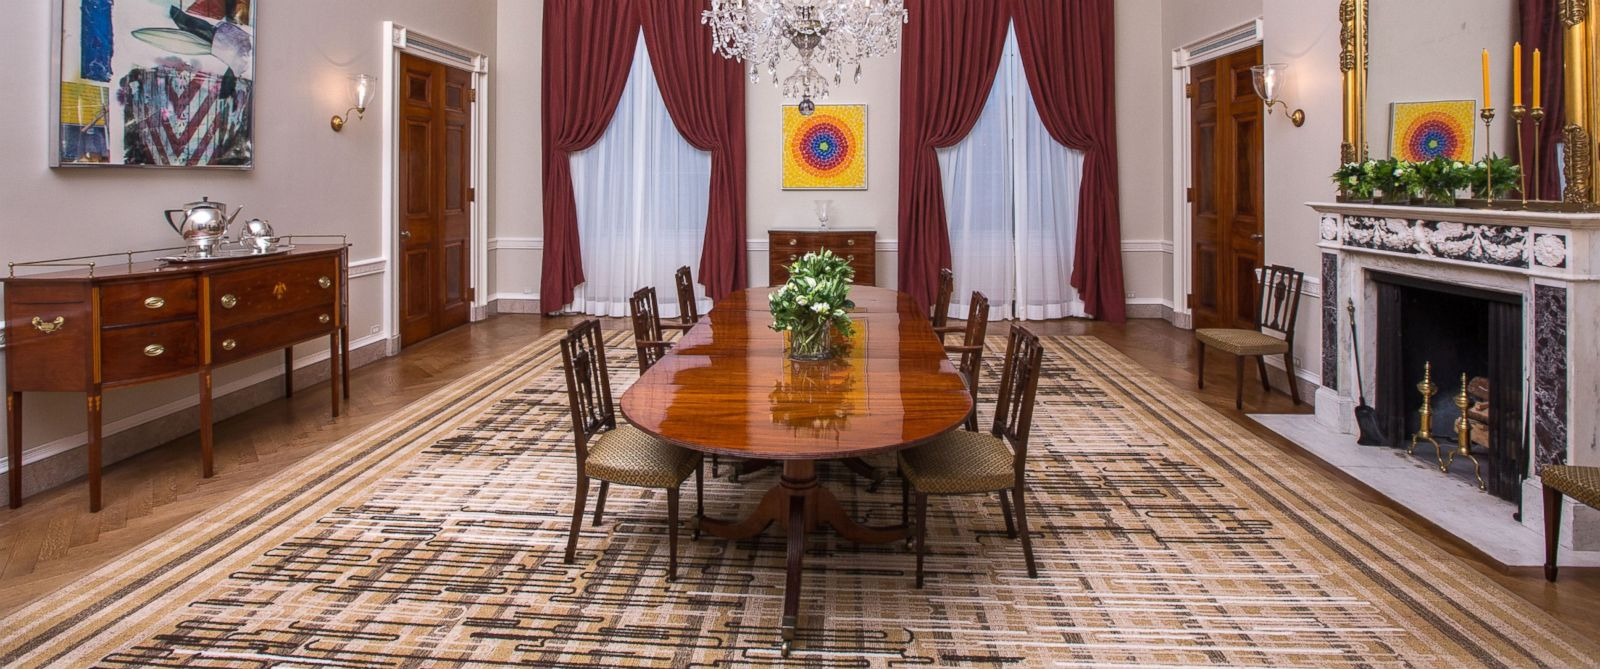 Family Dining Room Michelle Obama Surprises White House Visitors With Public Viewing